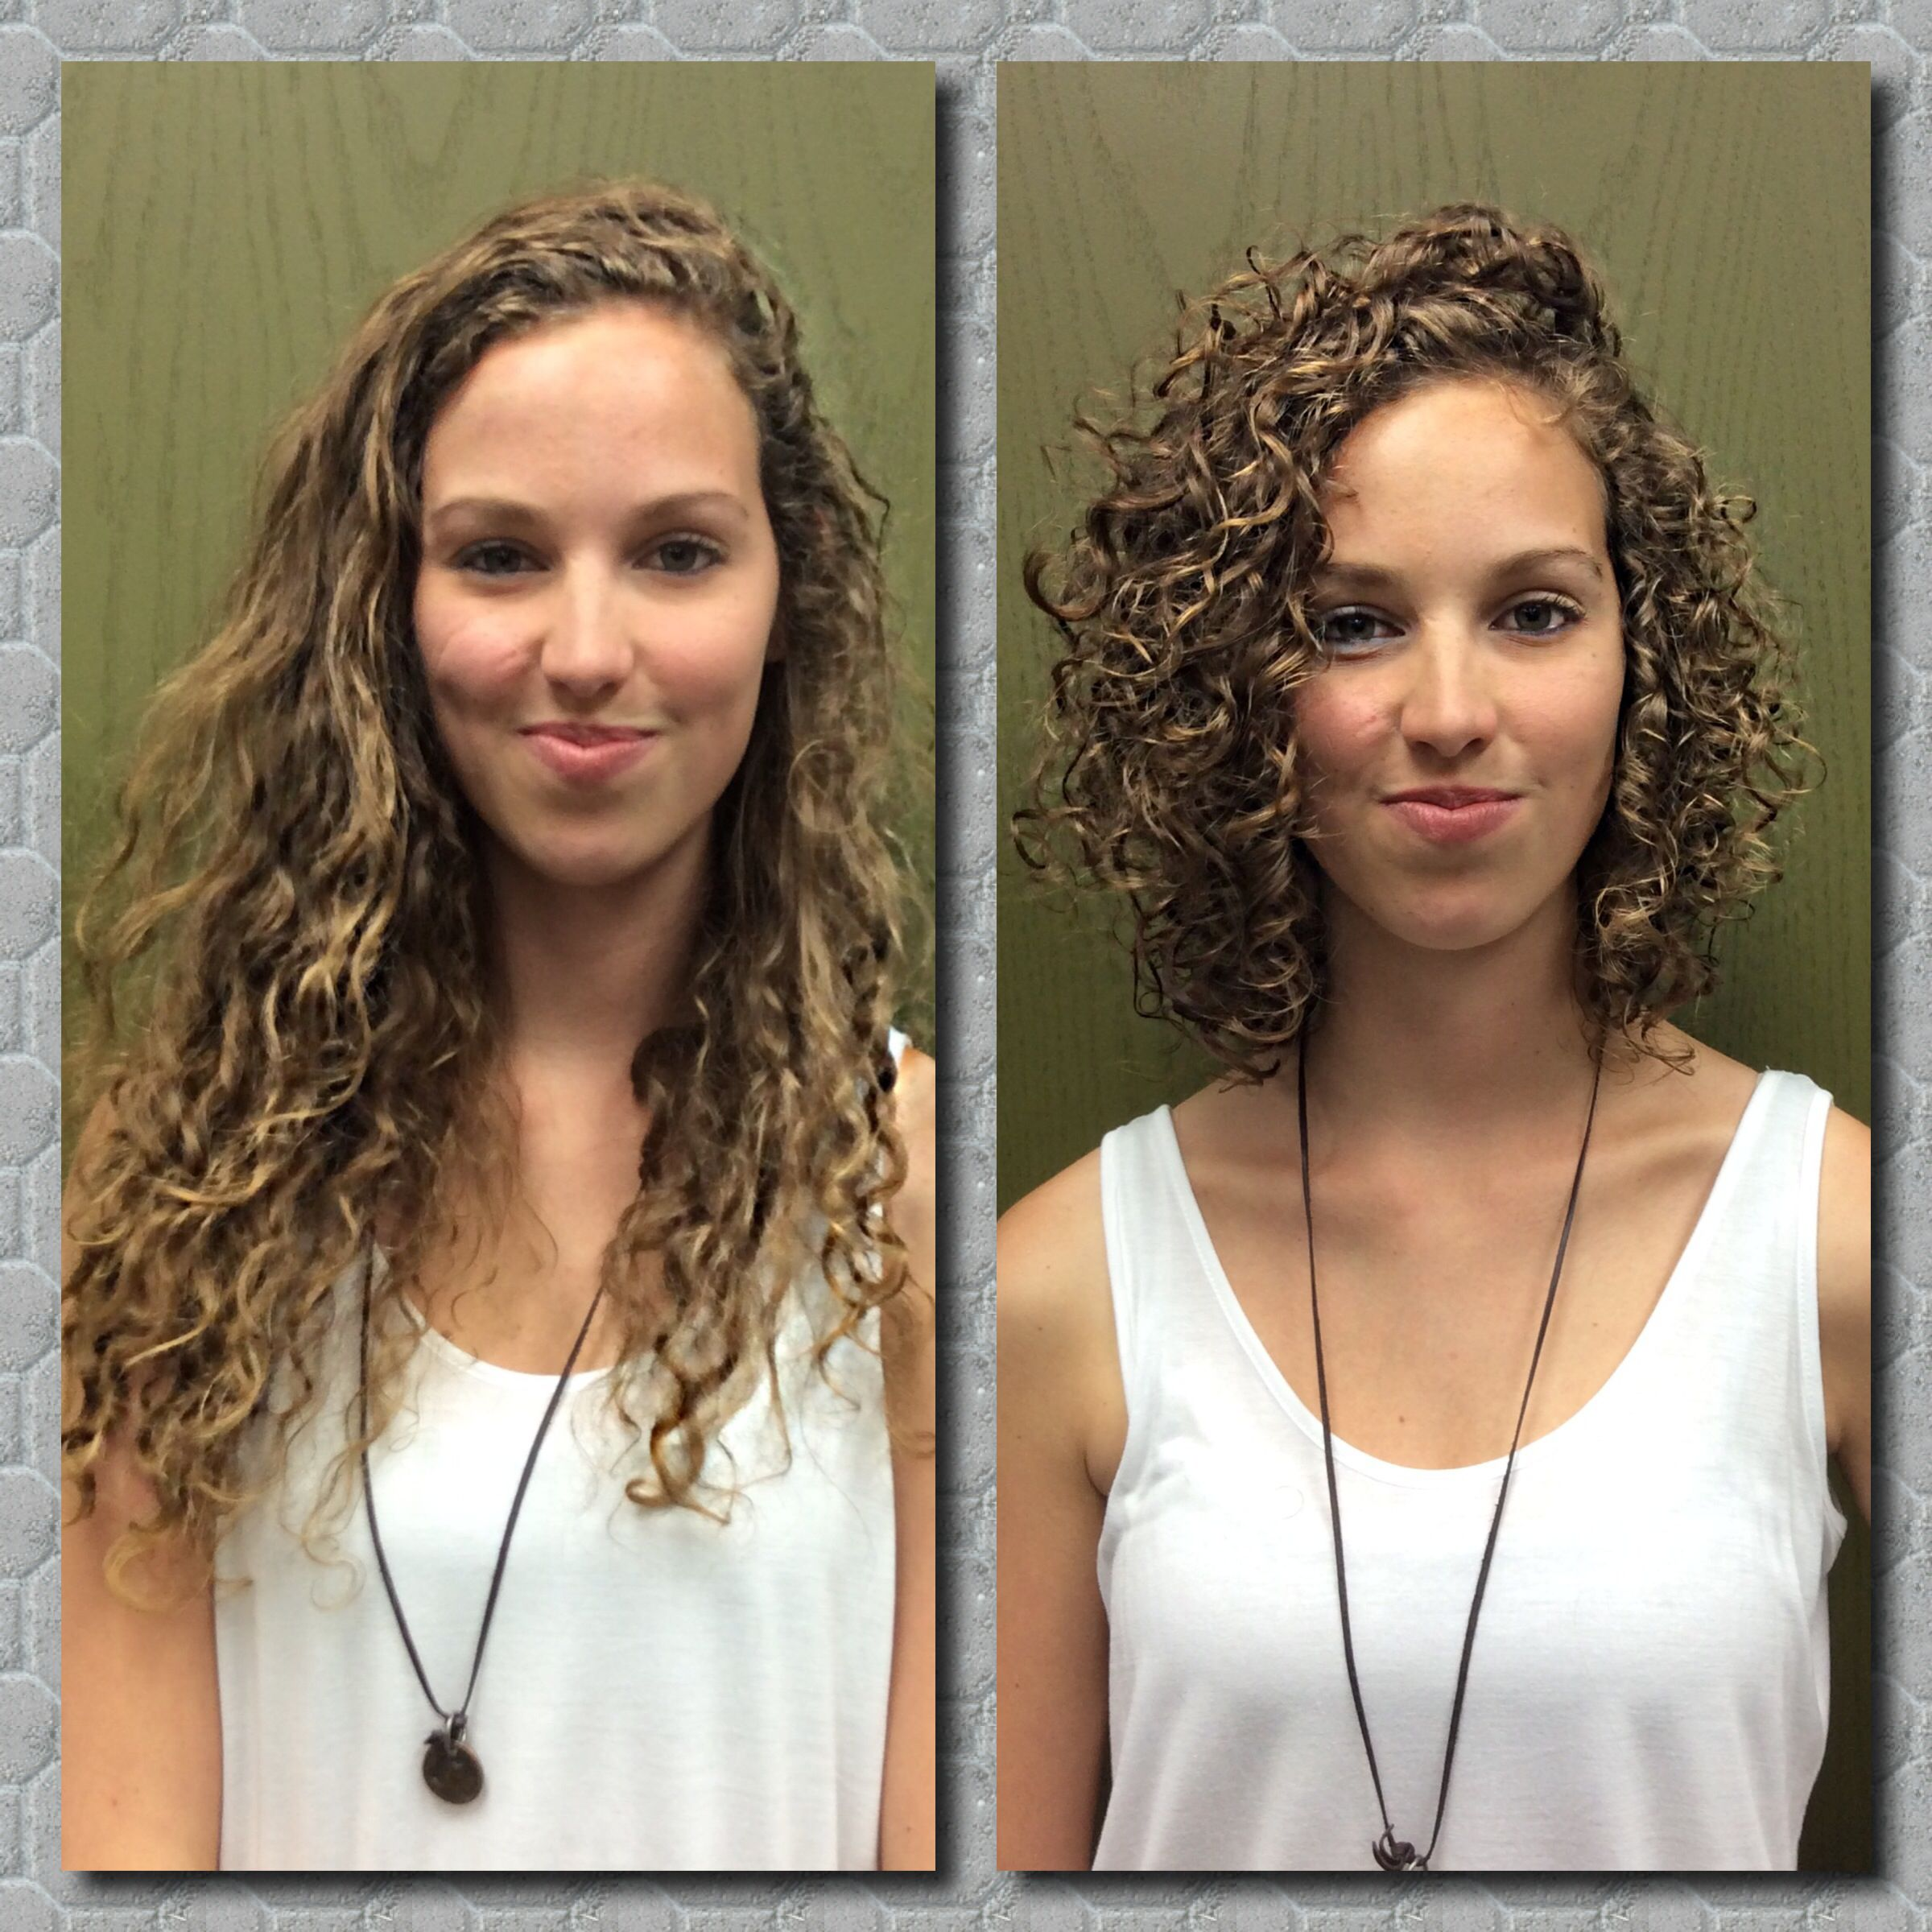 Curly Hair Before And After Hair Layered Curly Hair Curly Hair Styles Wavy Hair